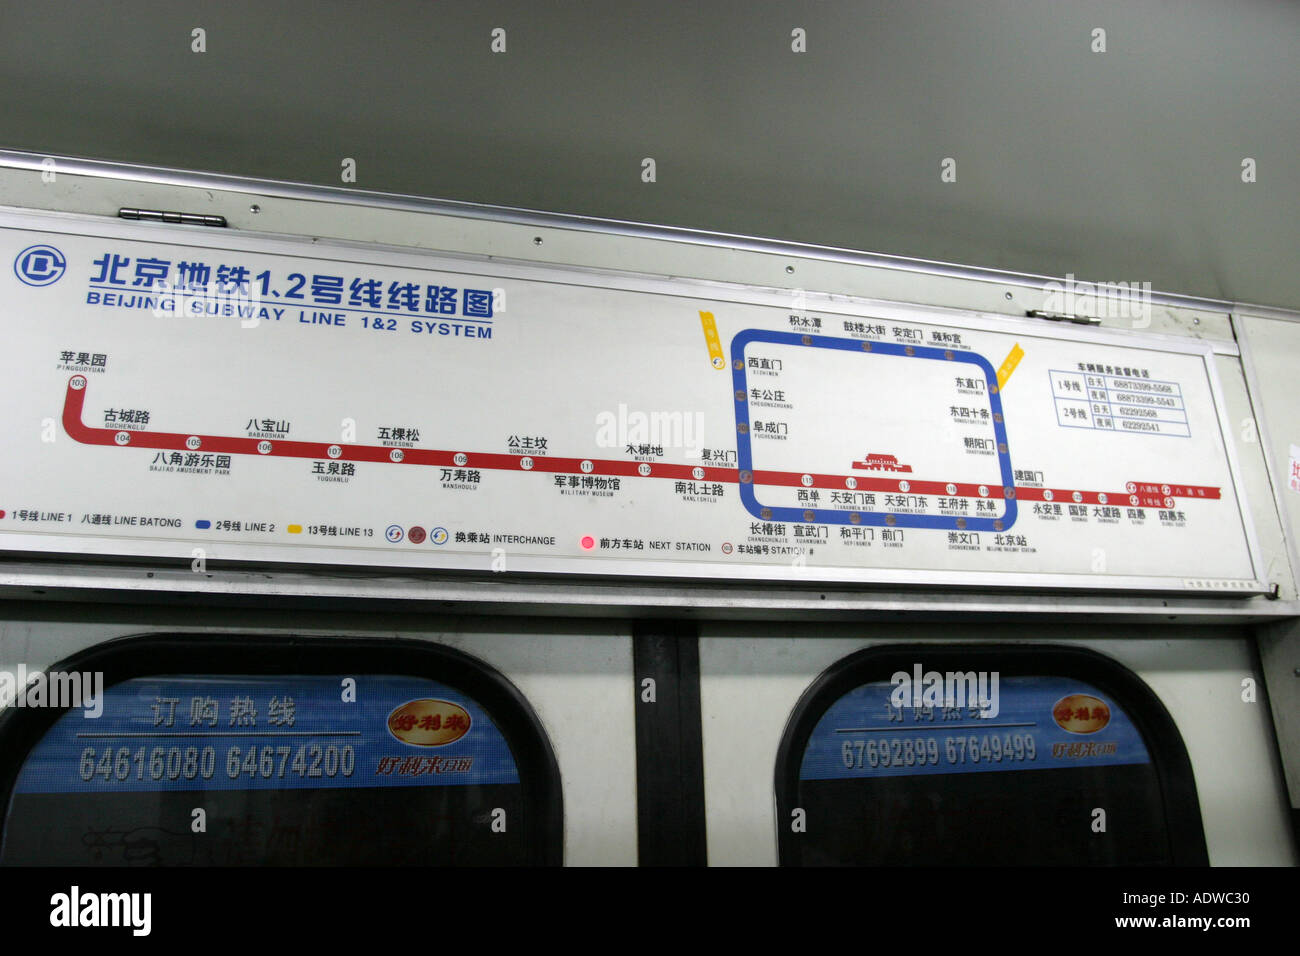 Beijing Subway Map Search.Beijing Subway Map Inside A Subway Train Carriage Showing All Stock